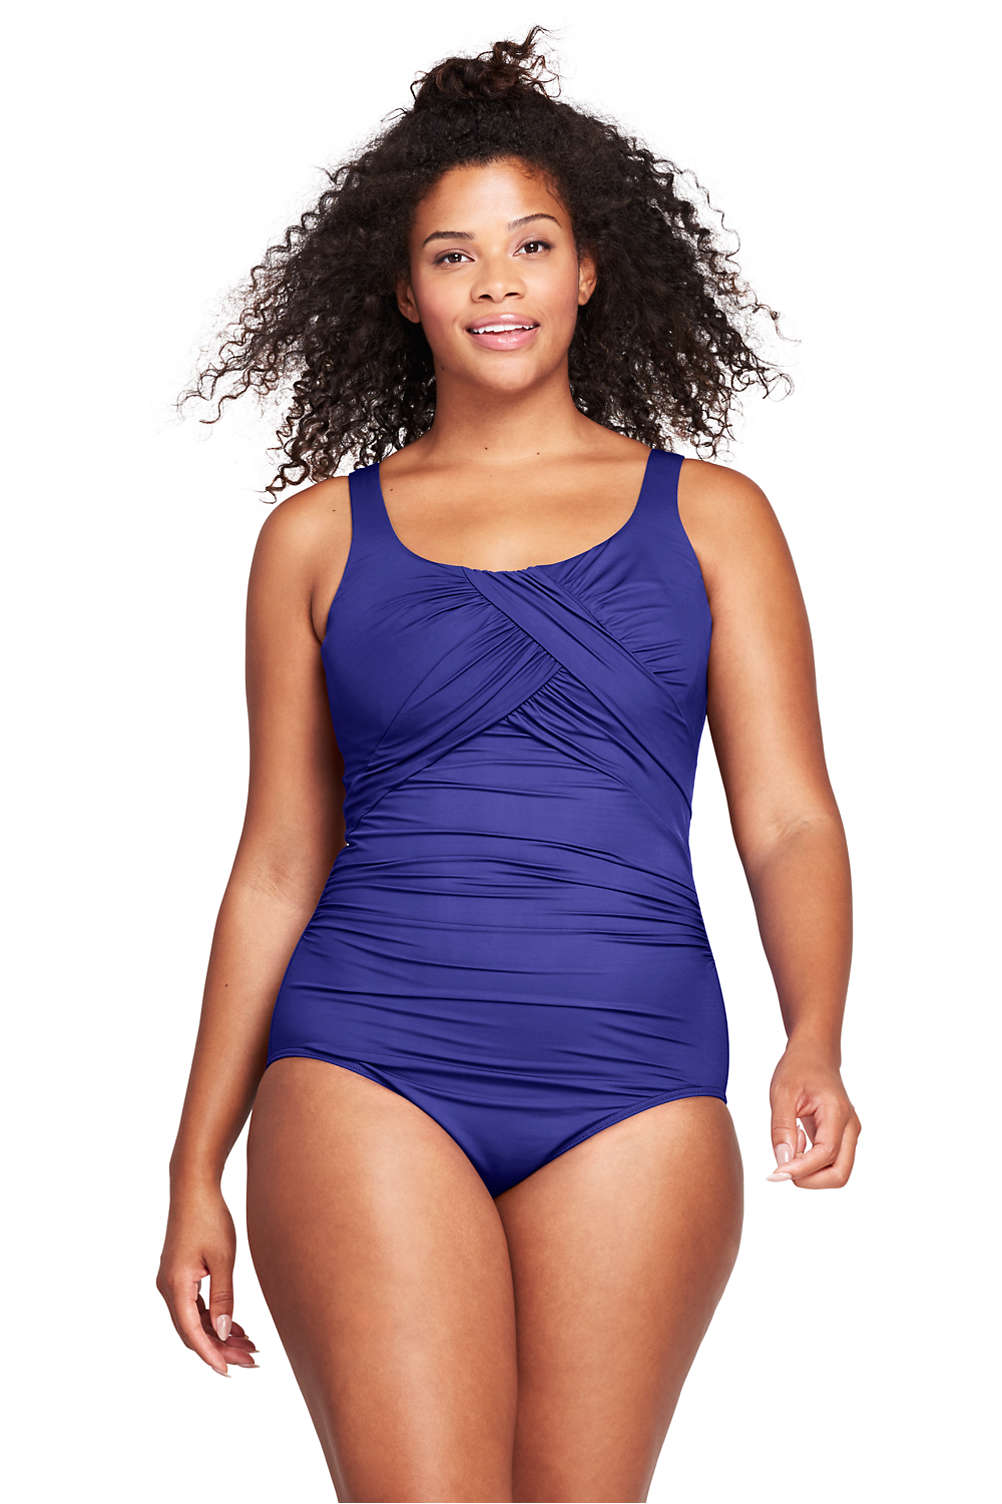 584b9a71ae0 Women s Plus Size Slender Carmela Underwire One Piece Swimsuit with Tummy  Control